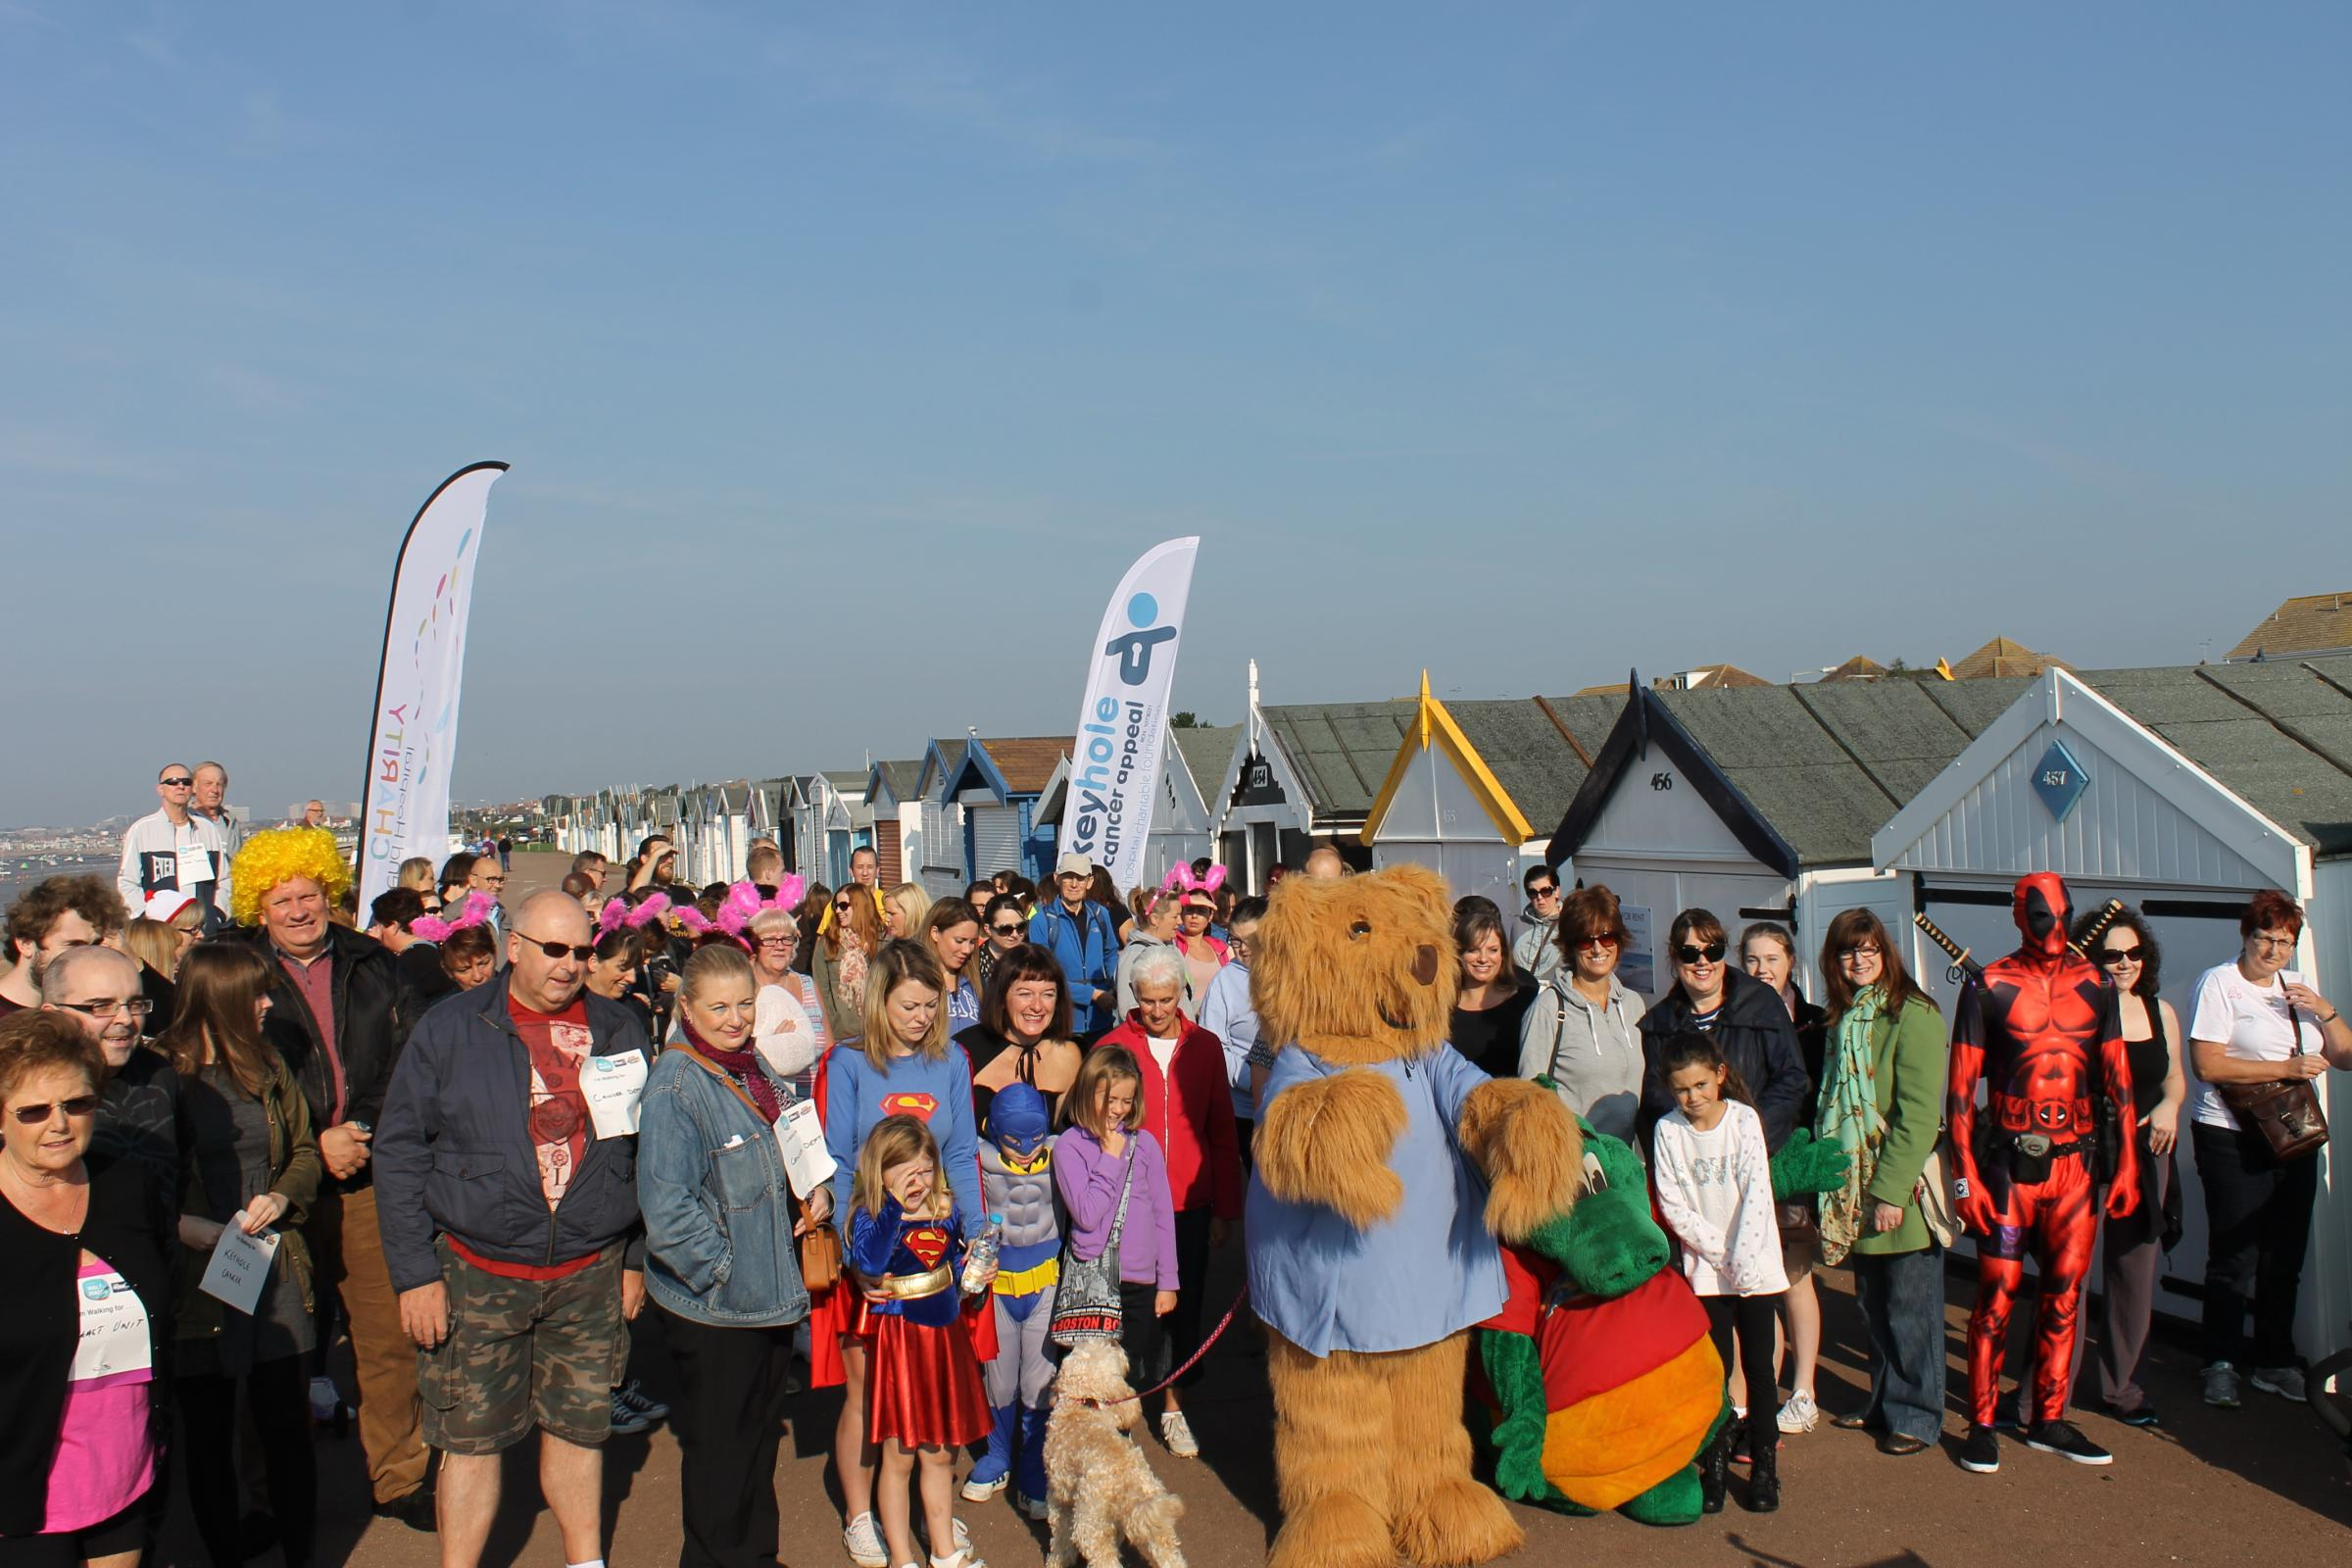 Southend Hospital Charity Walk for Wards